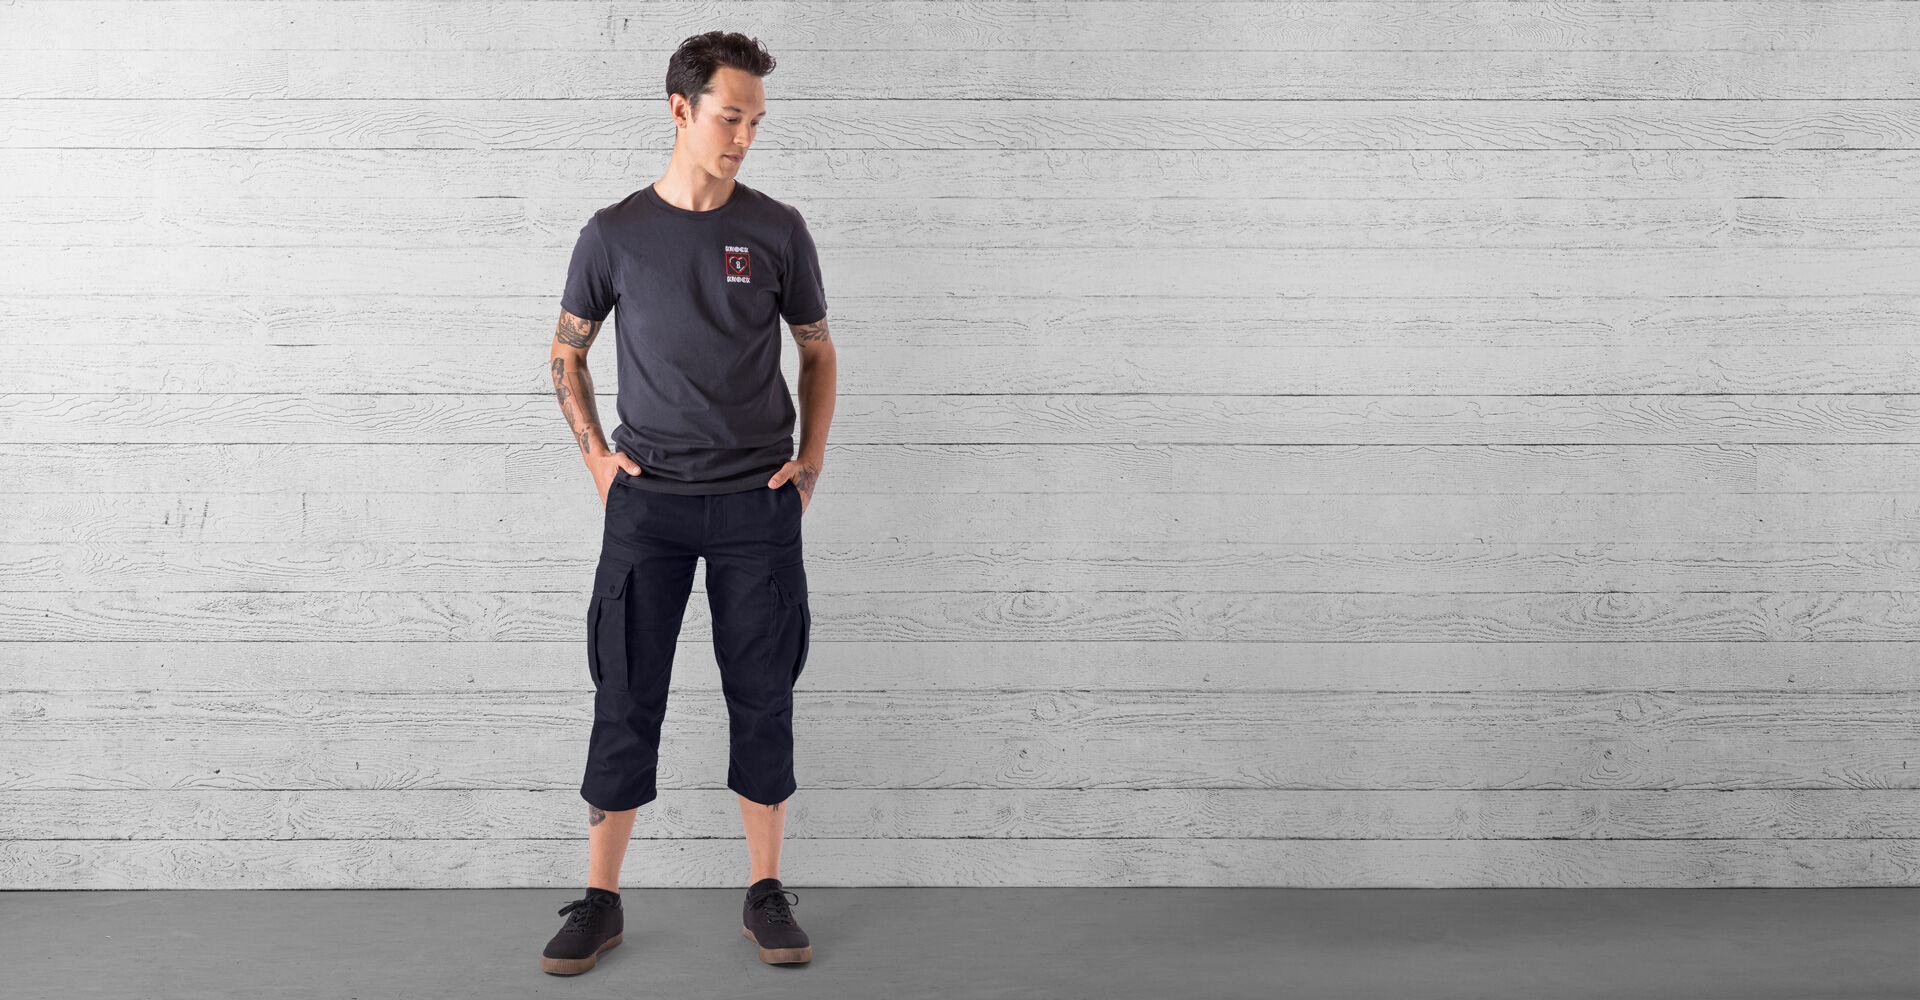 Blake Cycling Knicker Pant in Midnight - wide view.